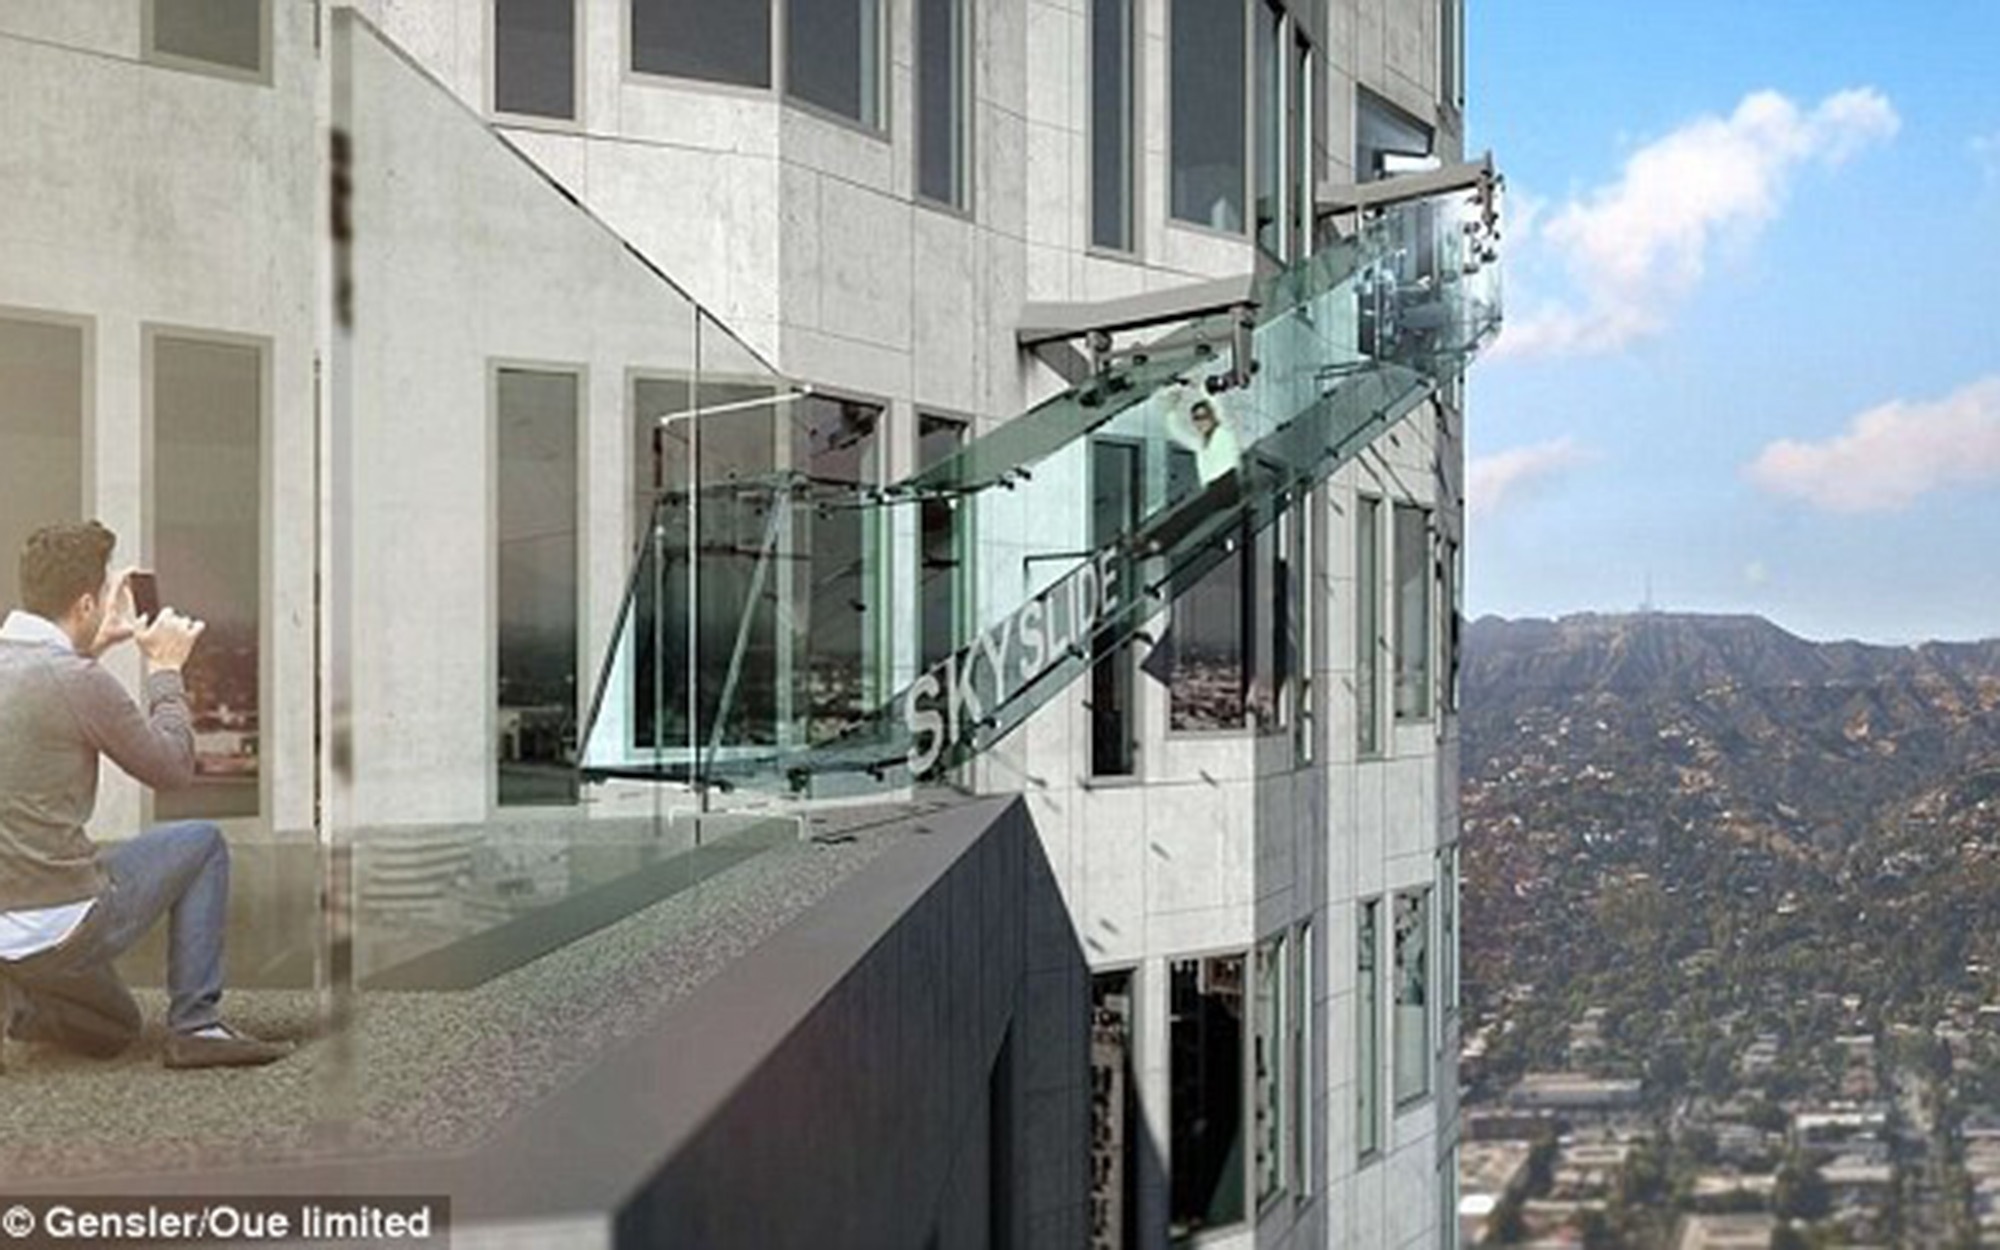 This L.A. Skyscraper Has a Glass Slide 1,000 Feet Off the Ground